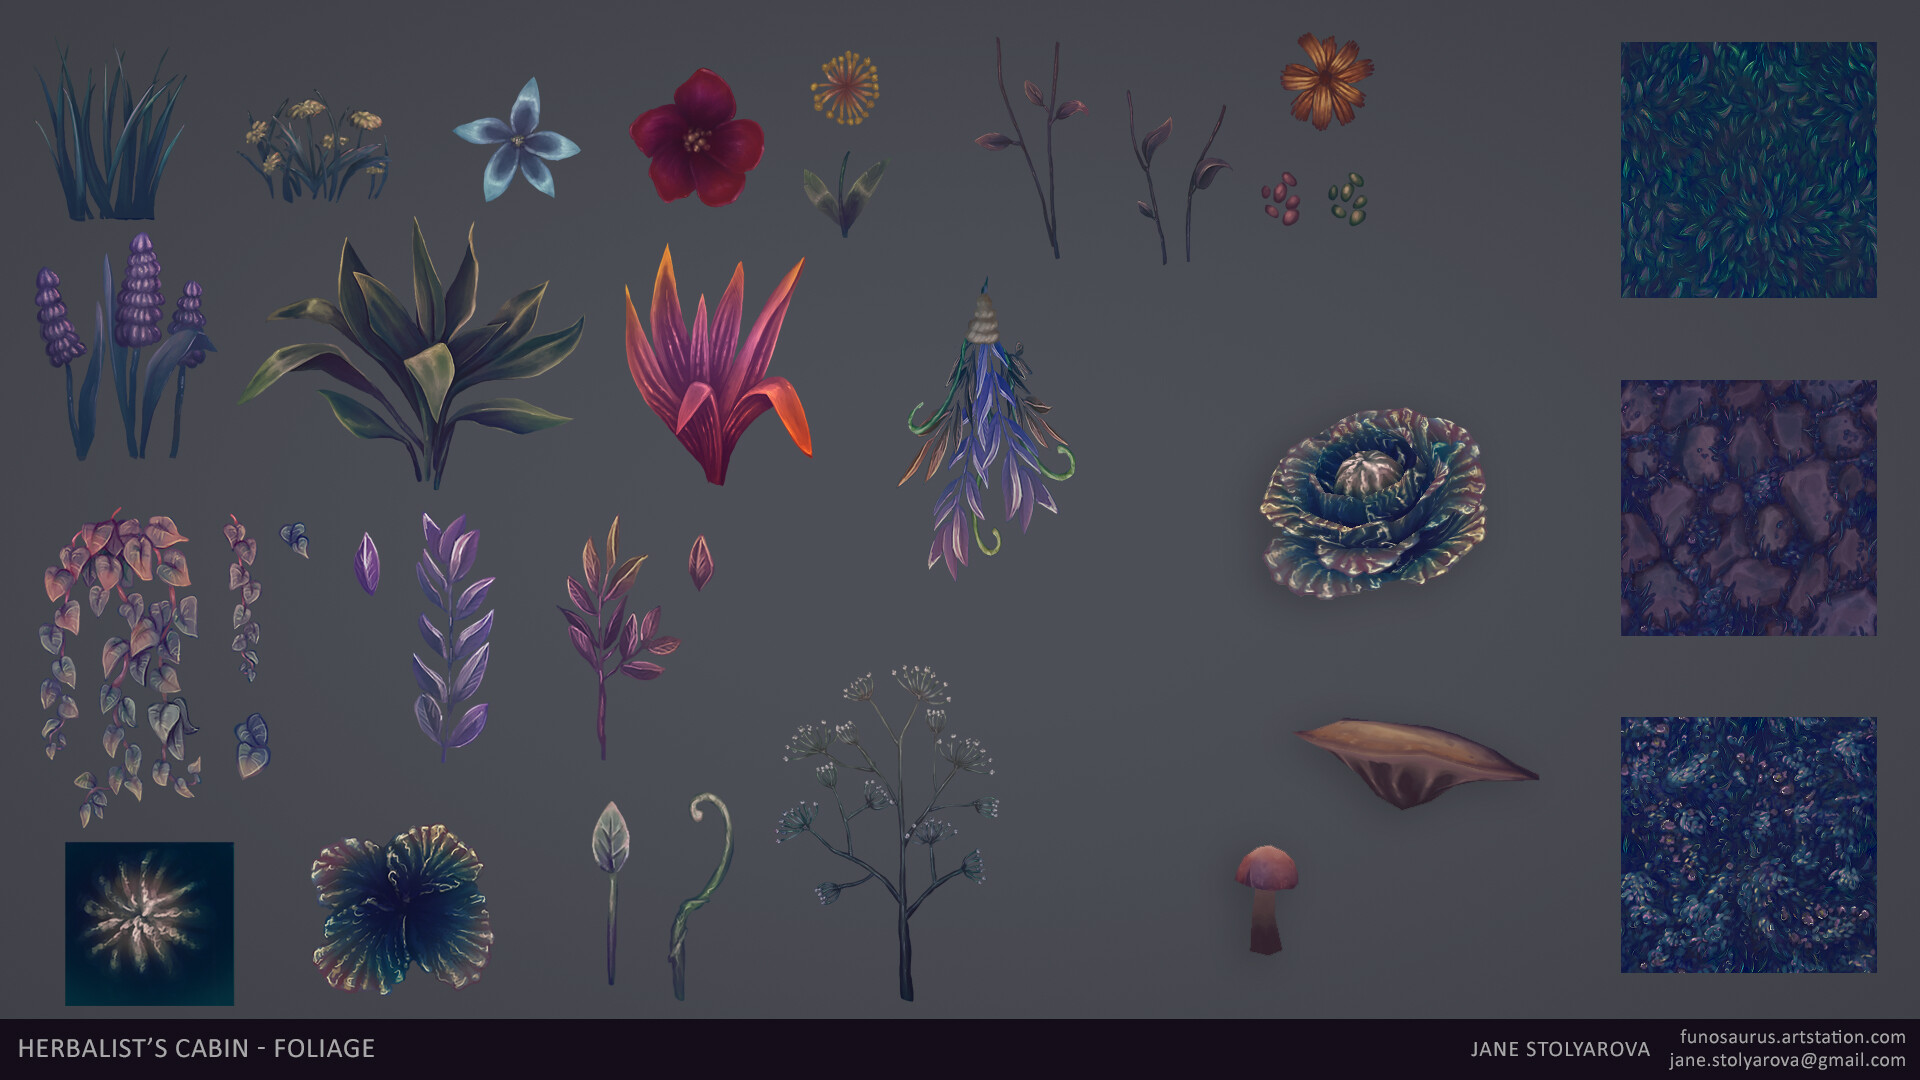 I spent a lot of time painting all the various foliage since they're such a key part of the scene.